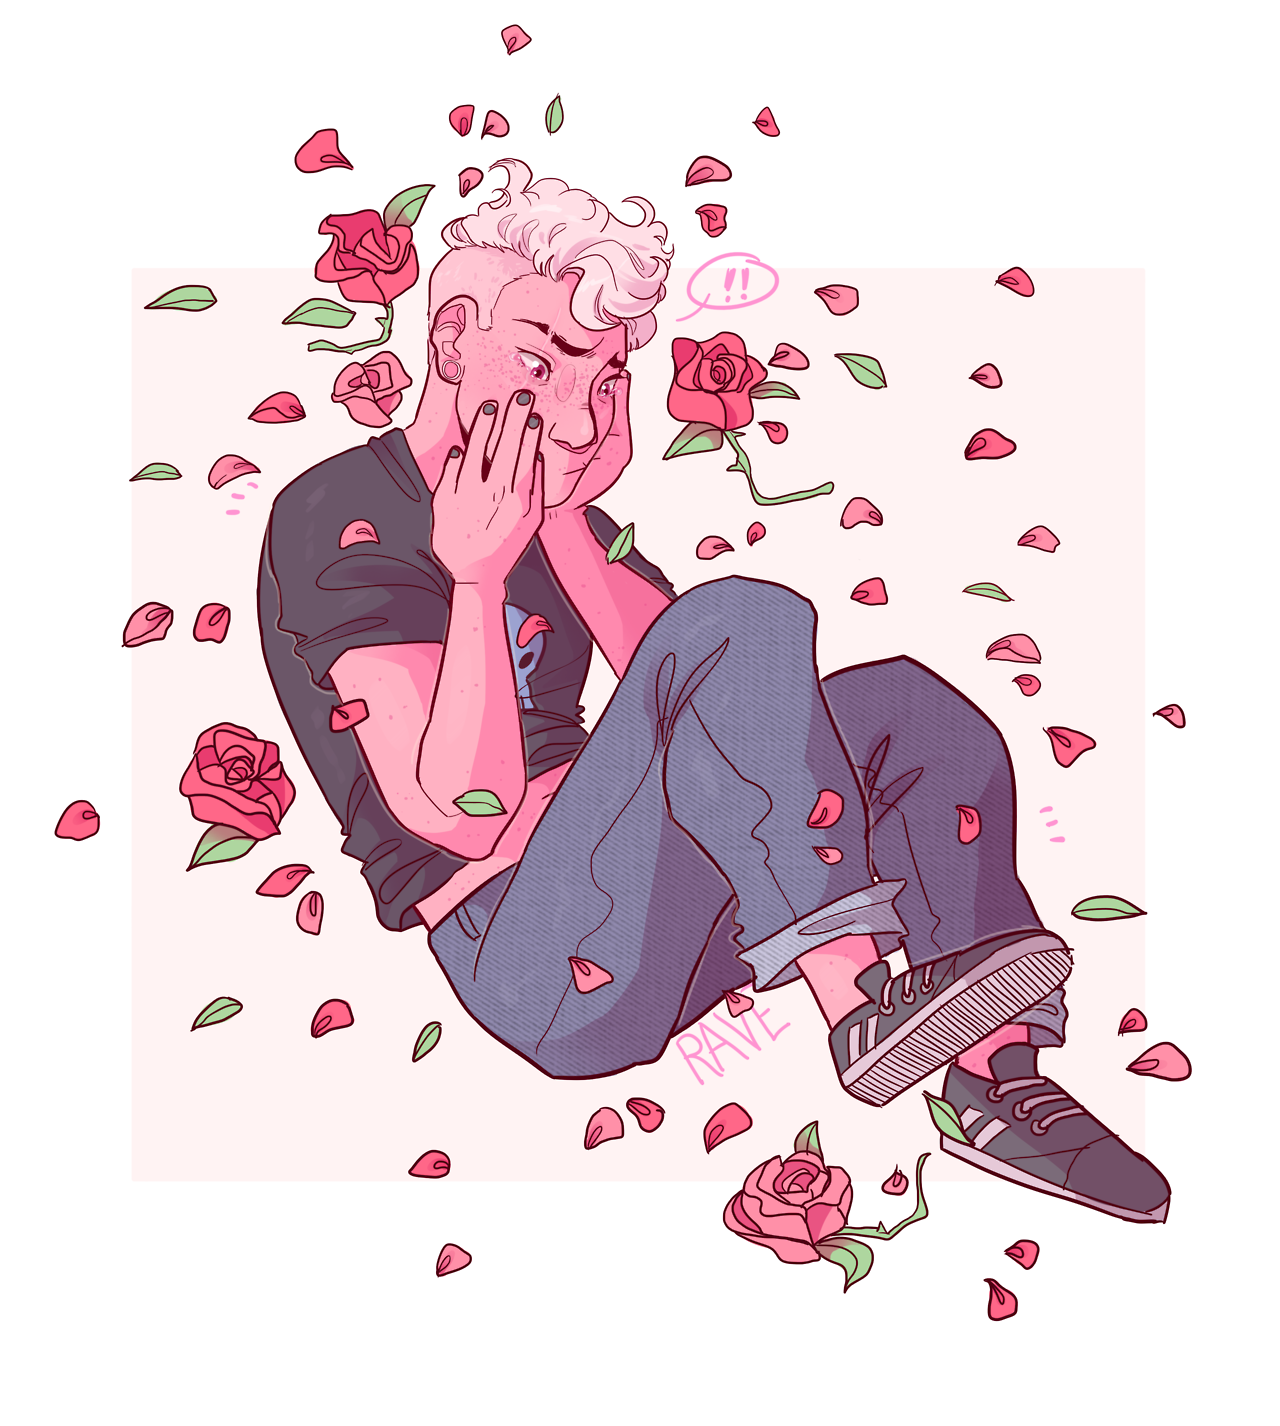 millennial pink was the color of the year, y'know speedpaint